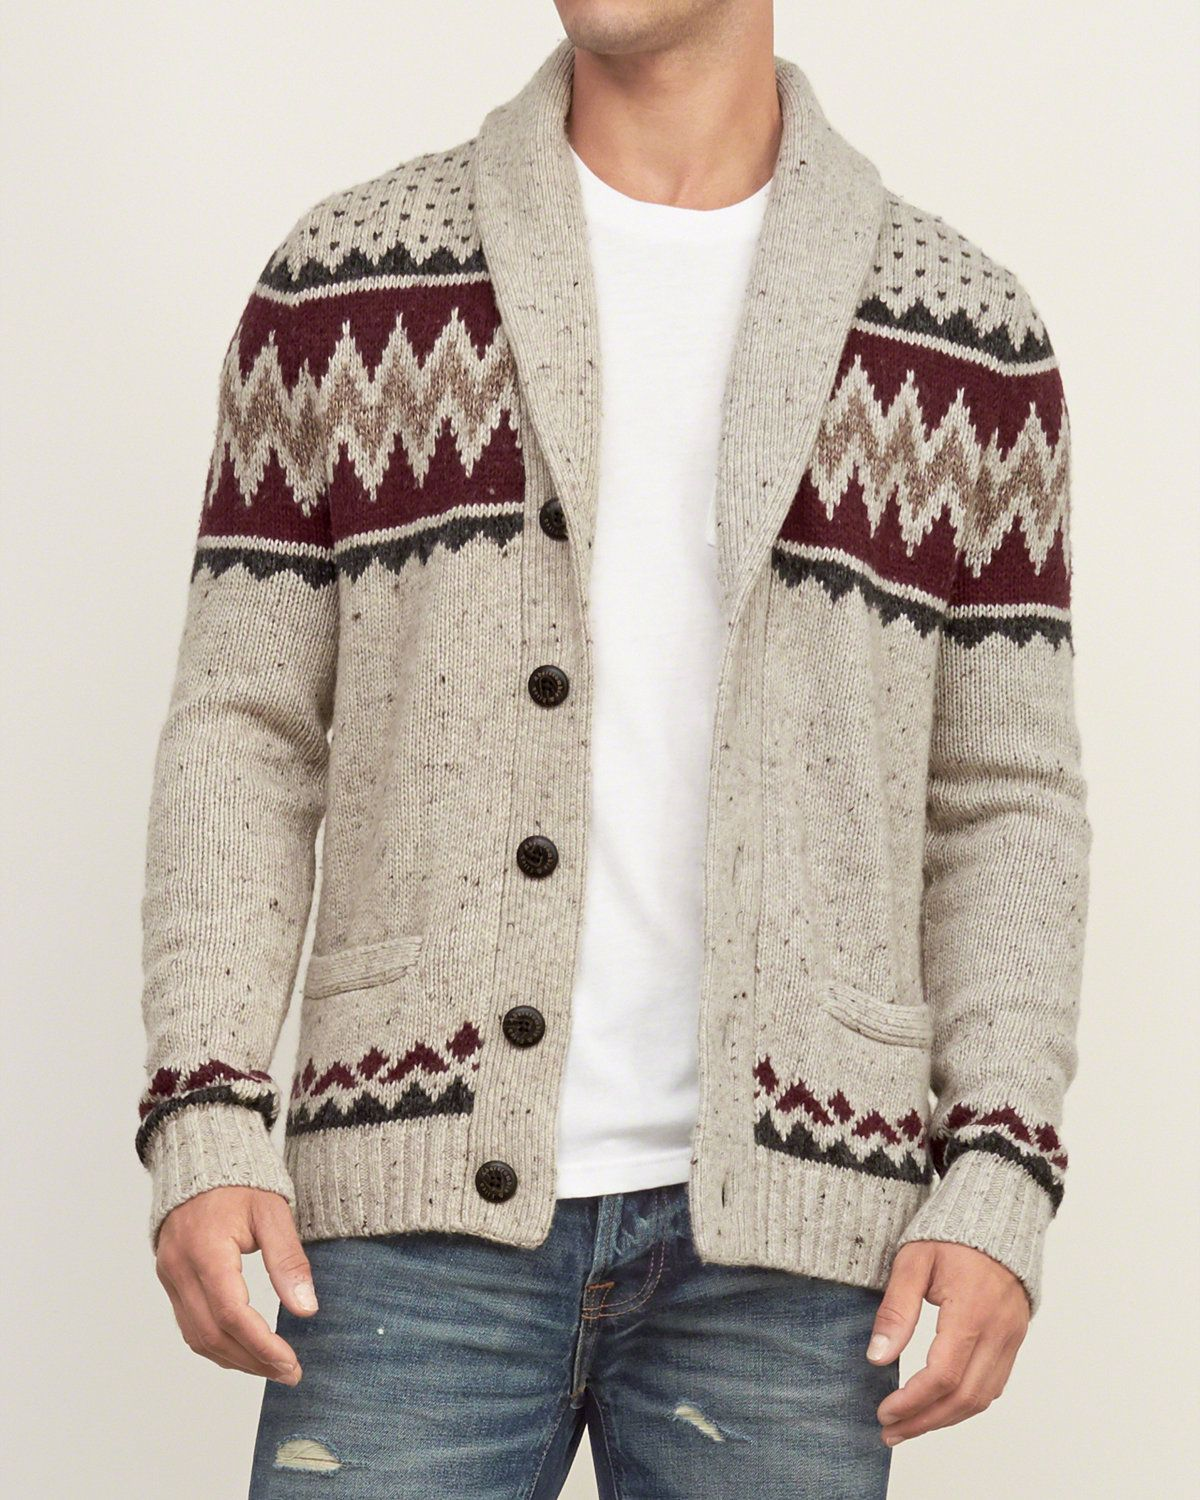 Mens Patterned Shawl Cardigan | Mens Sweaters | Abercrombie.com ...